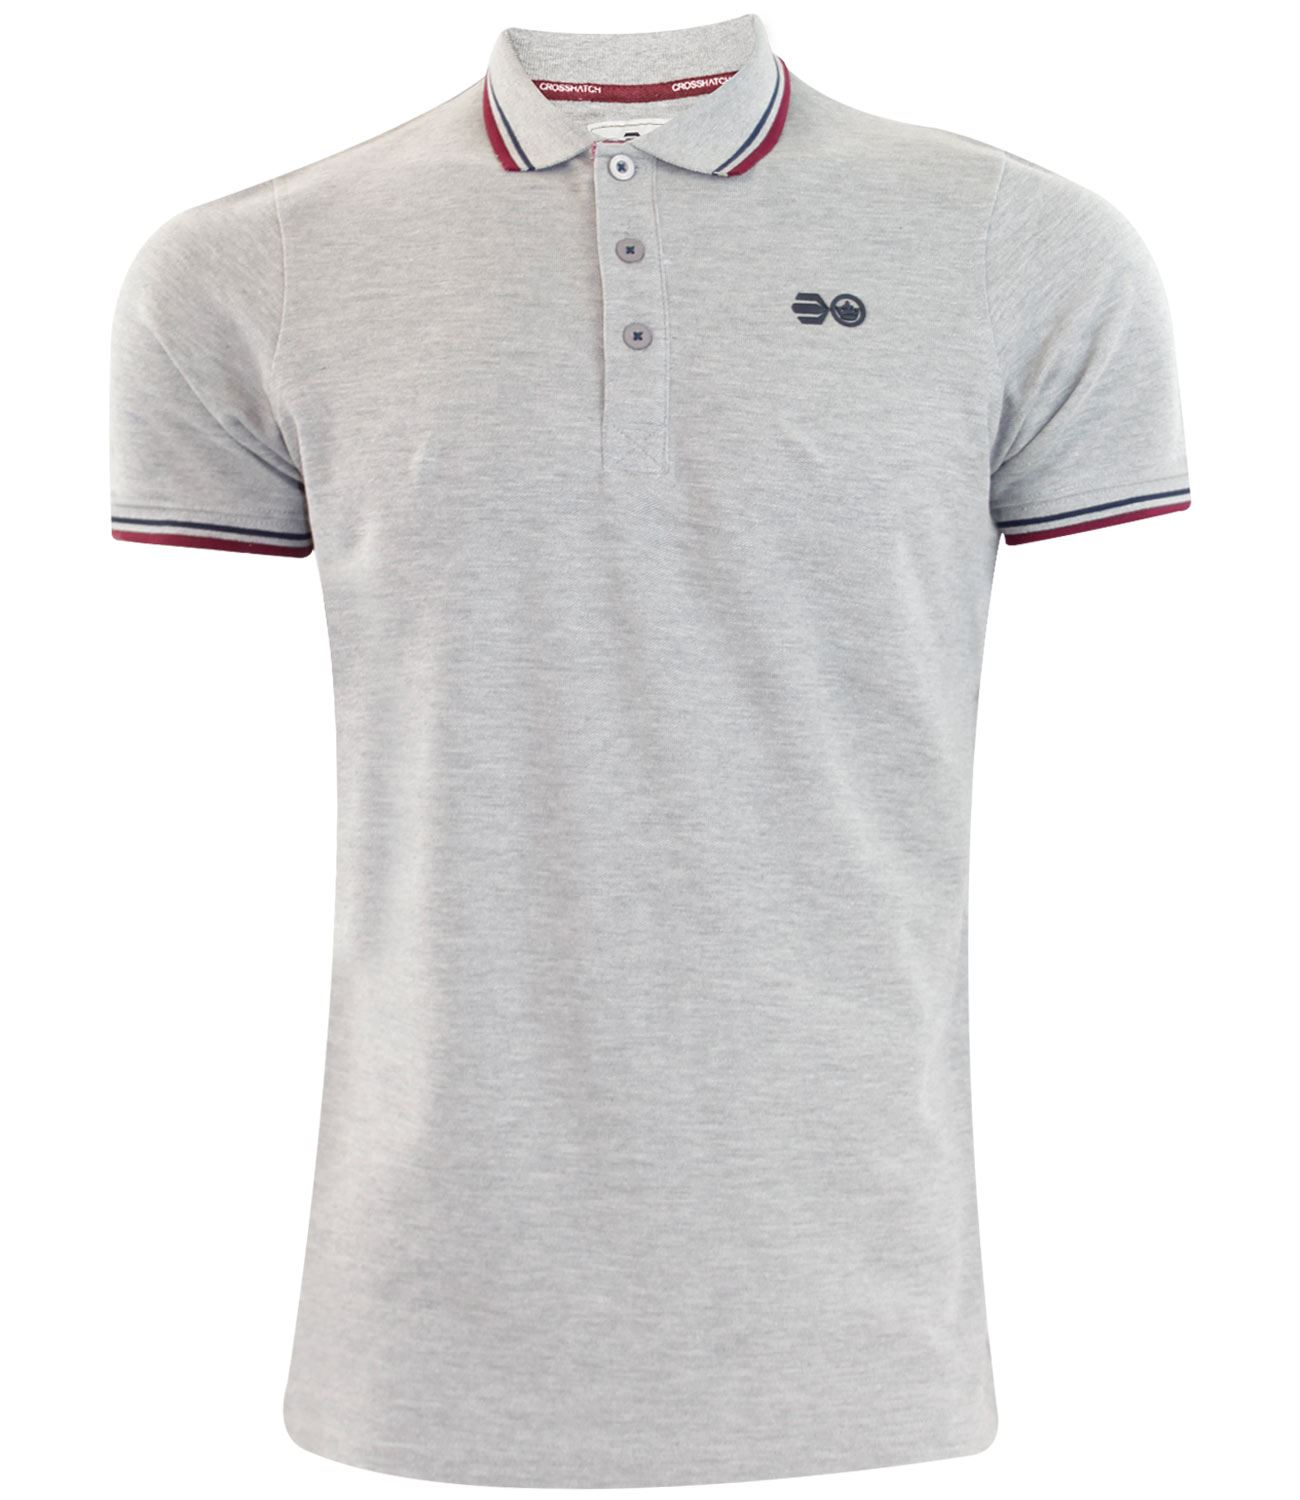 T shirt white colour - New Mens Branded Crosshatch Pk Polo T Shirt Tipping Colour Cotton Pique Tee